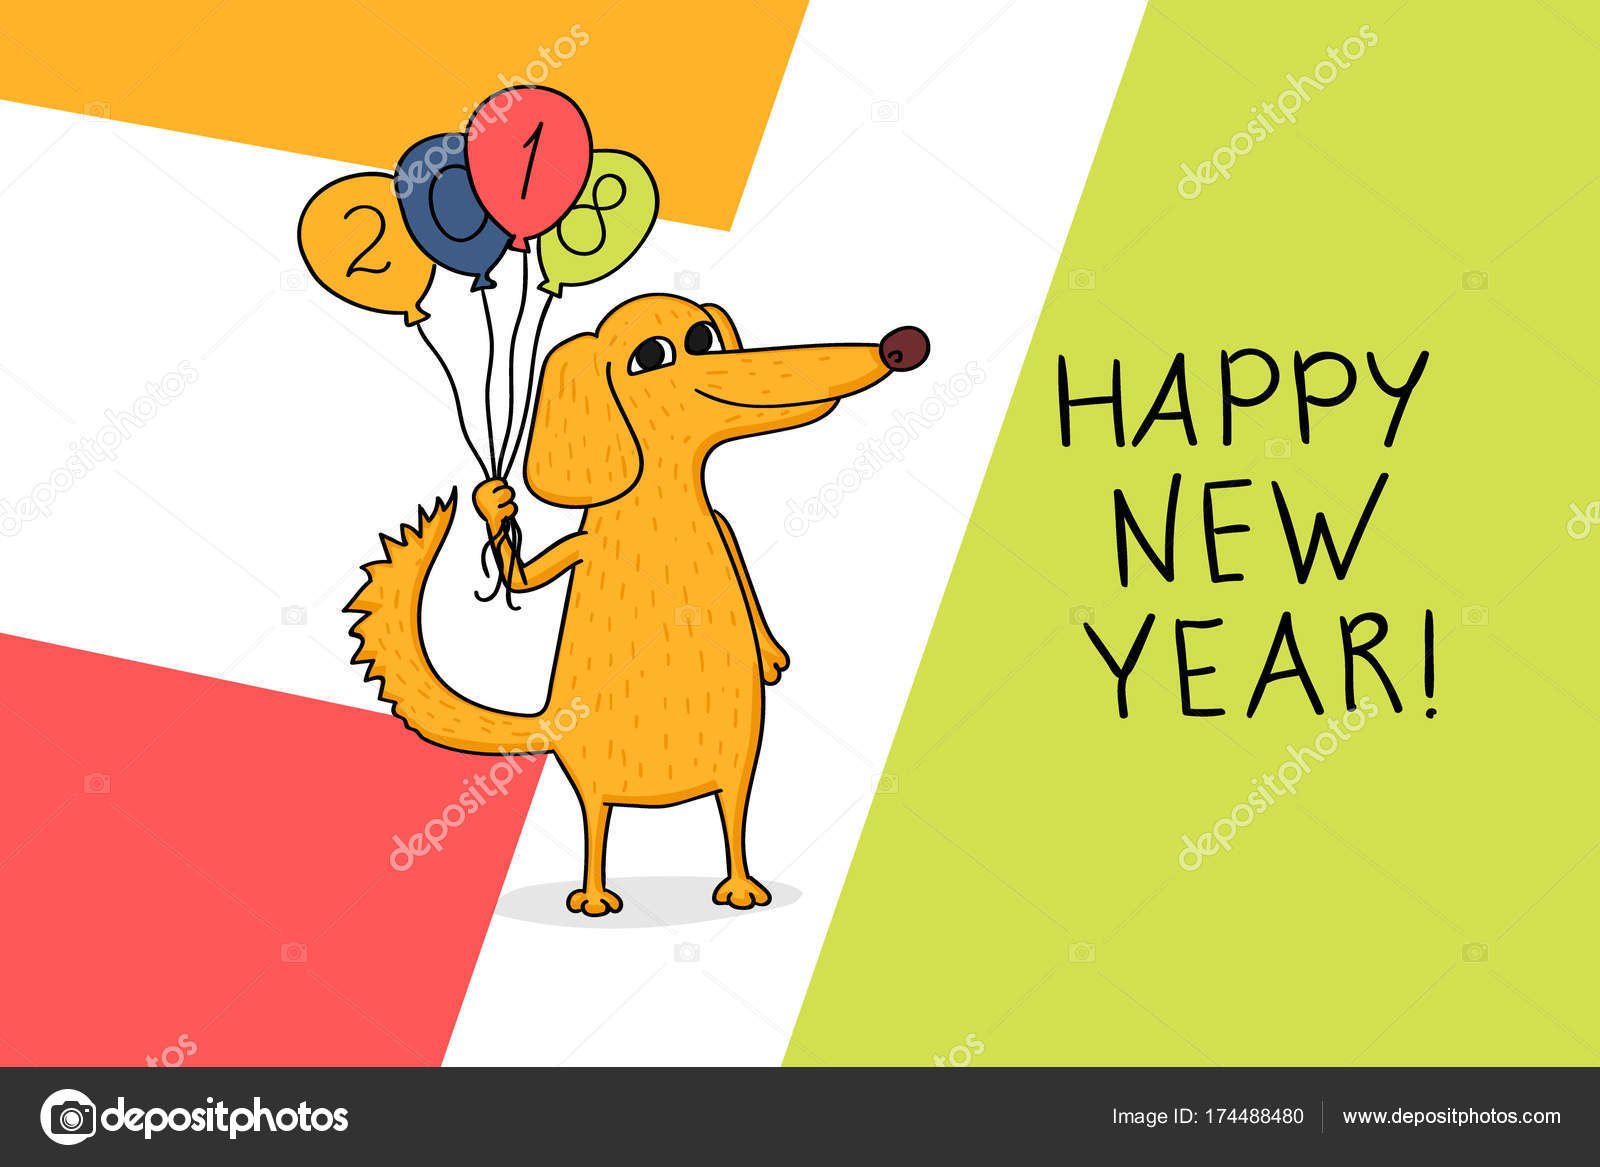 2018 happy new year greeting card celebration background with dog and with balloons and place for your text 2018 chinese new year of the dog